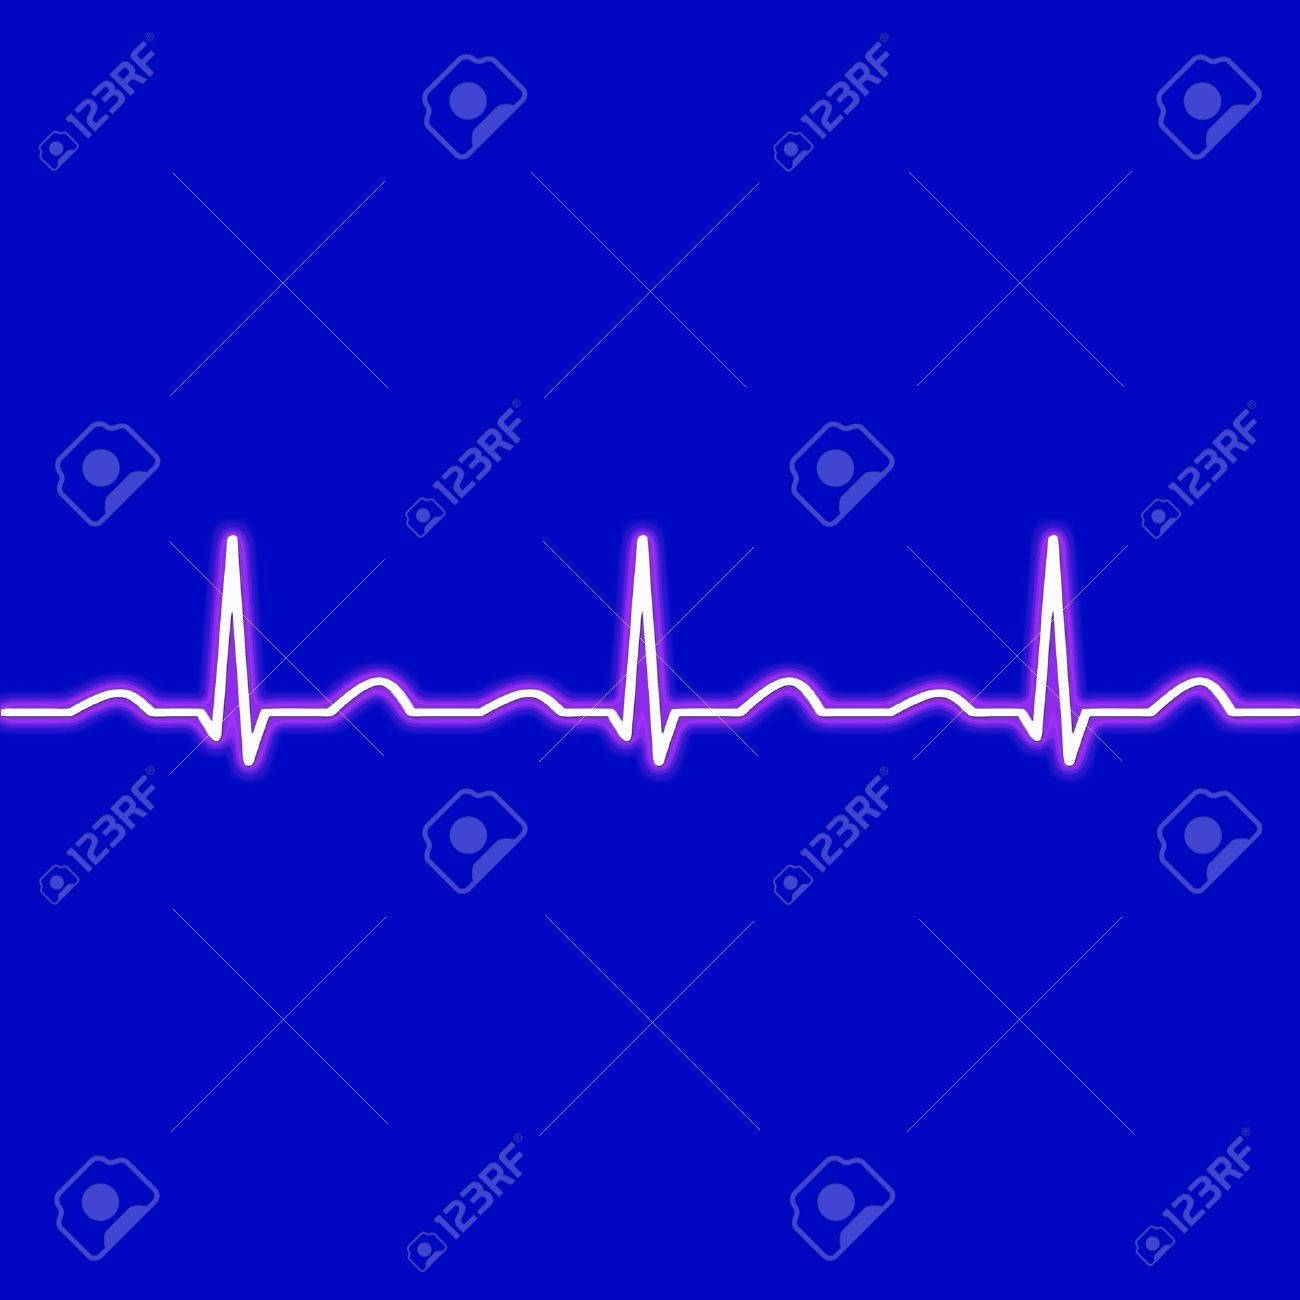 ecg waves in red on a black background Stock Photo - 12745102